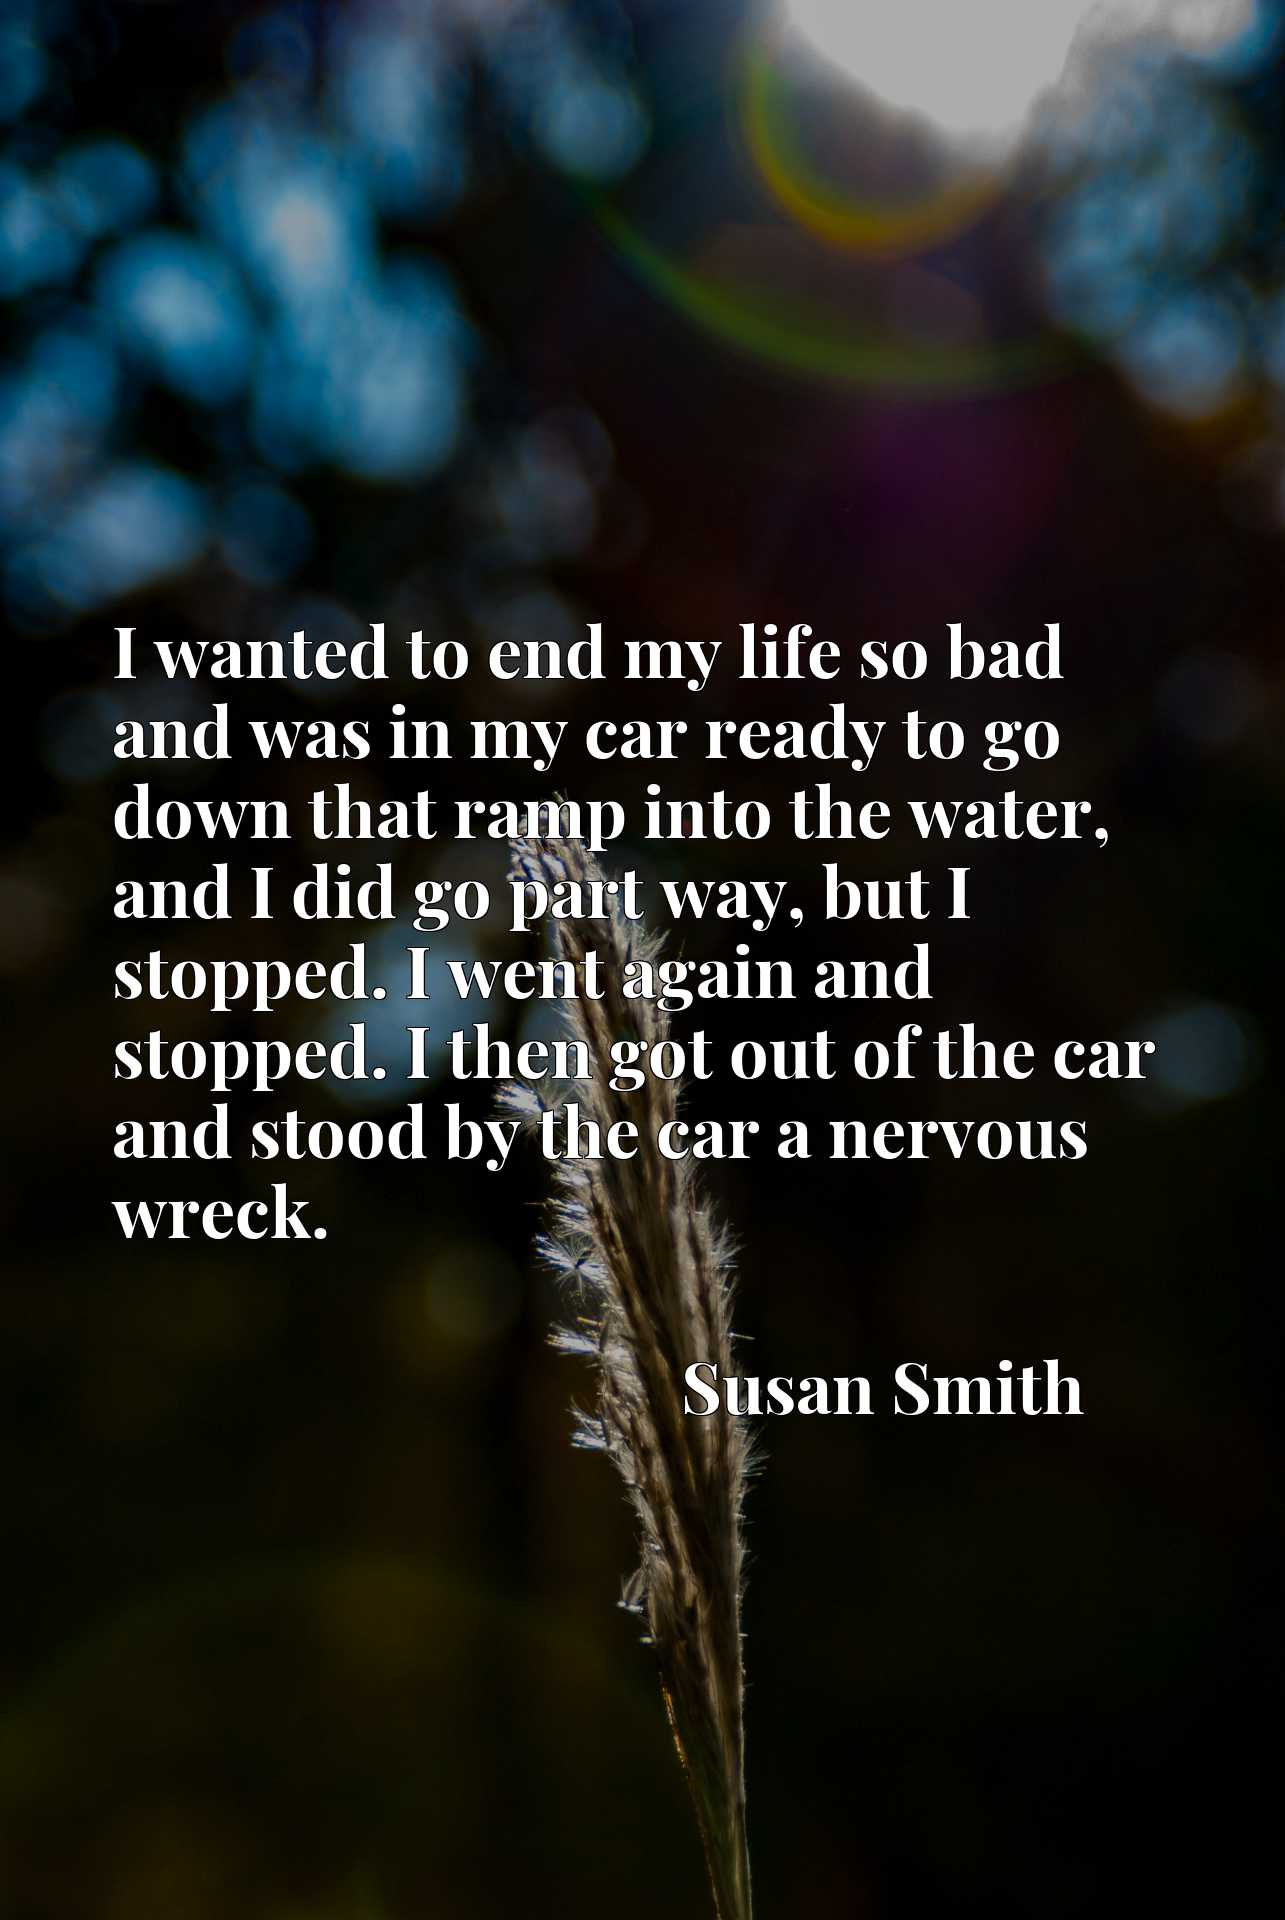 I wanted to end my life so bad and was in my car ready to go down that ramp into the water, and I did go part way, but I stopped. I went again and stopped. I then got out of the car and stood by the car a nervous wreck.